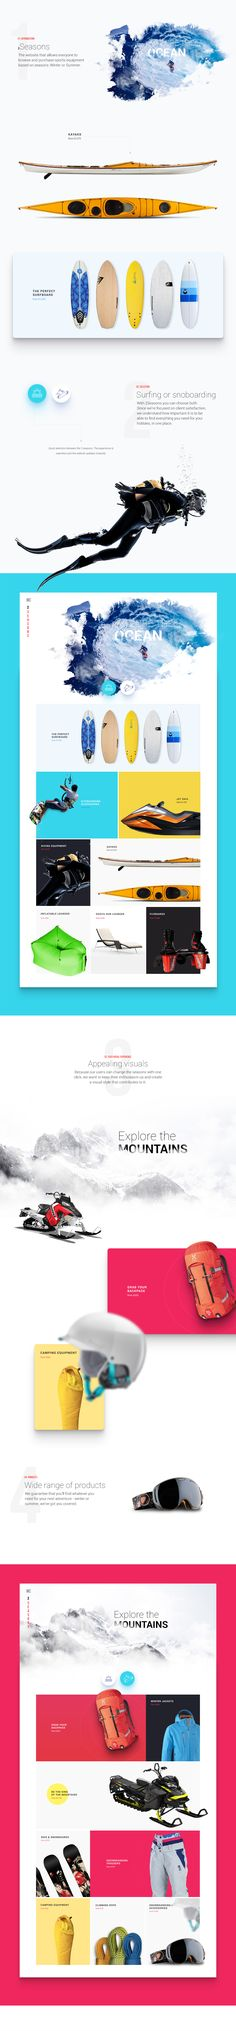 2 Seasons - A Web Design e-commerce project which allows the users to browse and purchase sports products based on the 2 seasons: Winter or Summer.